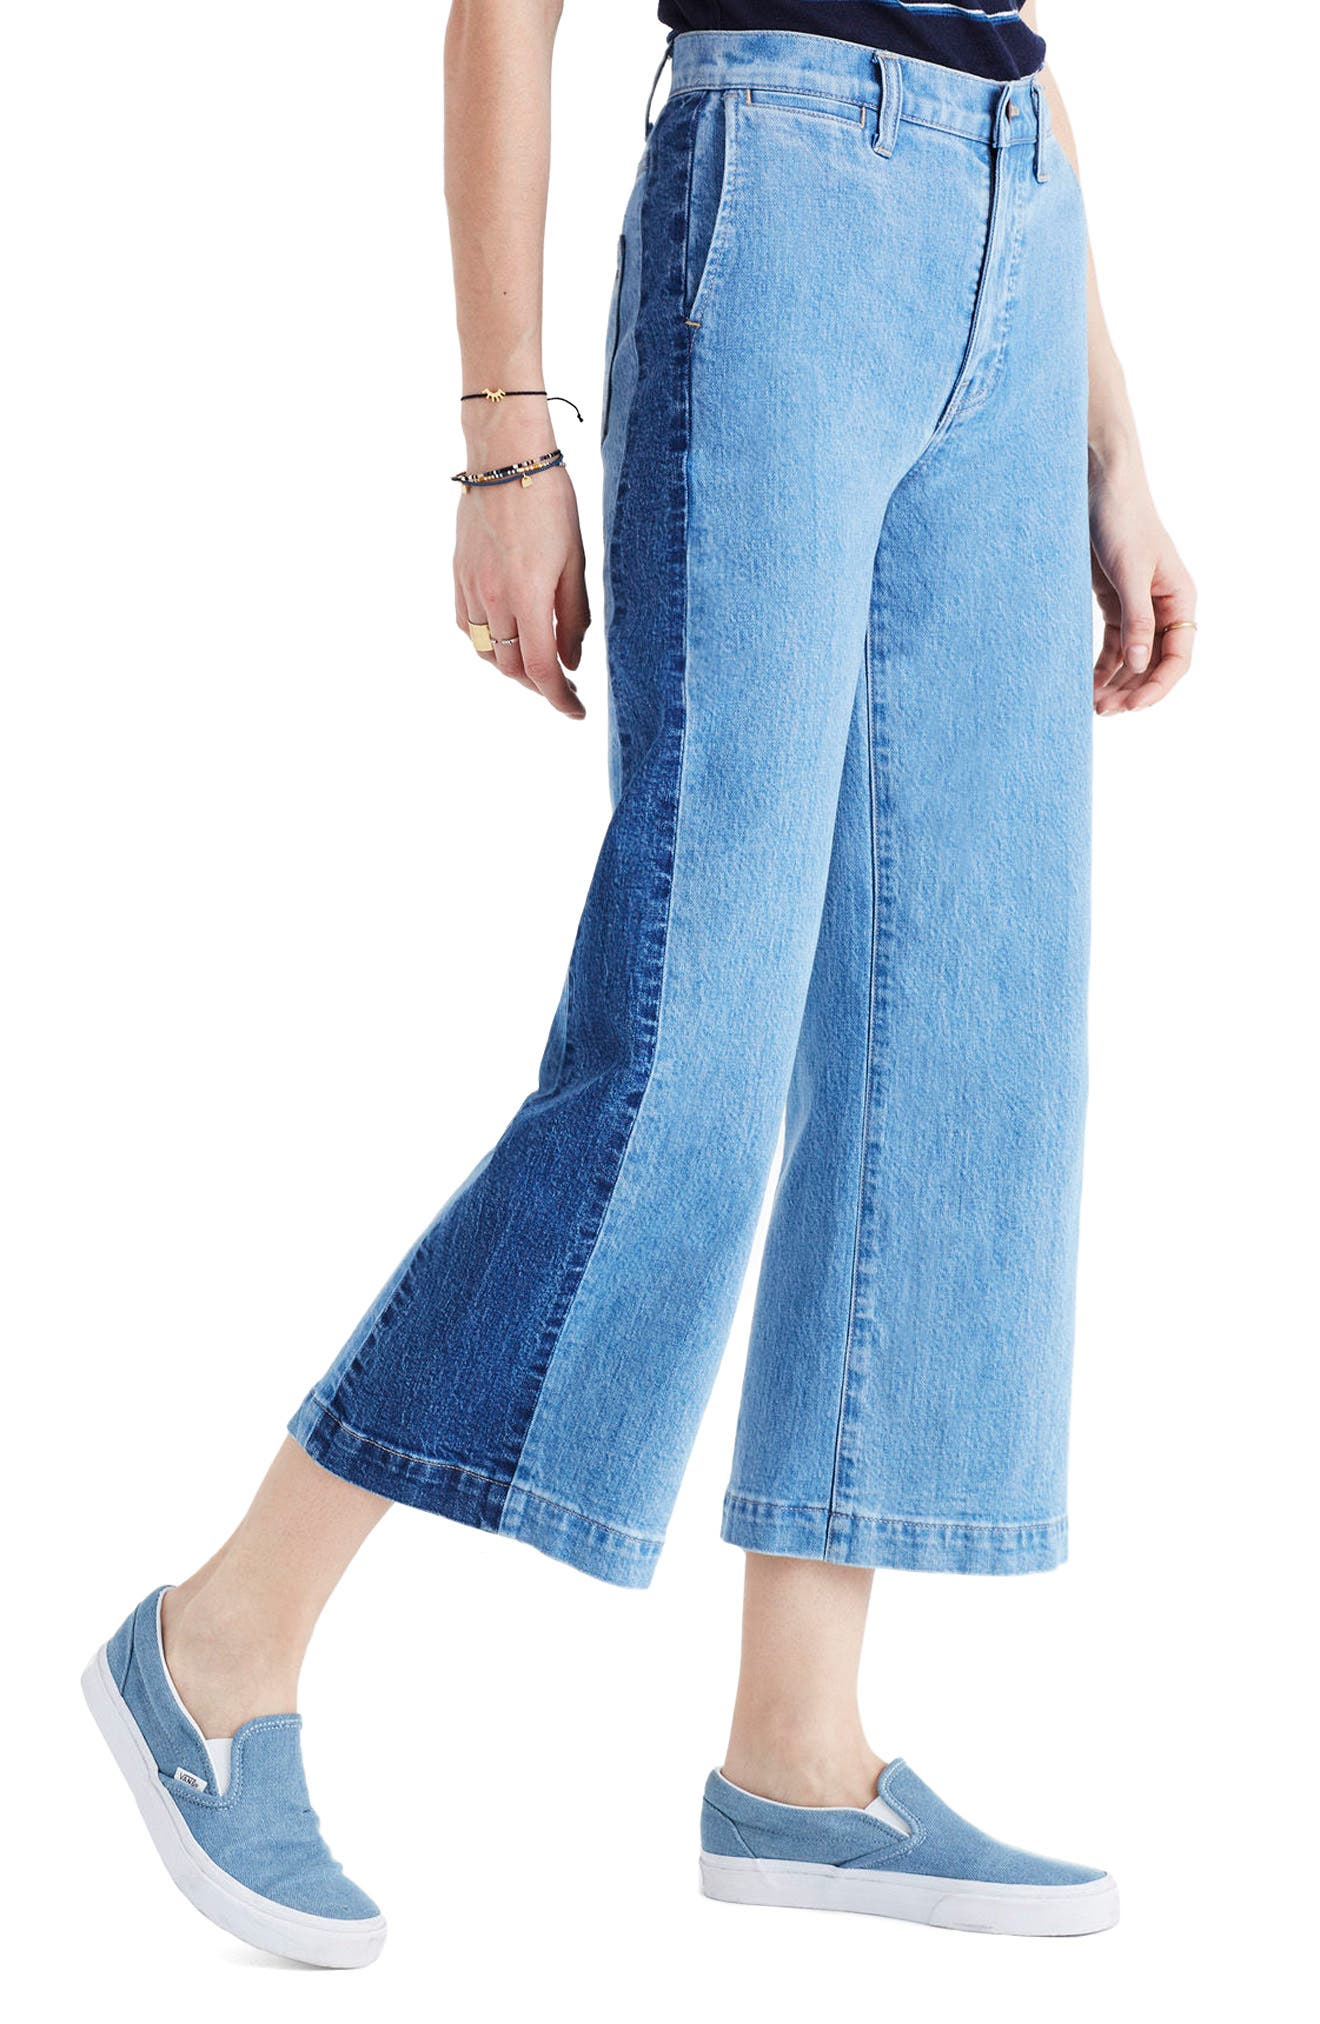 Madewell High Waist Crop Wide Leg Jeans (Ellendale Wash)